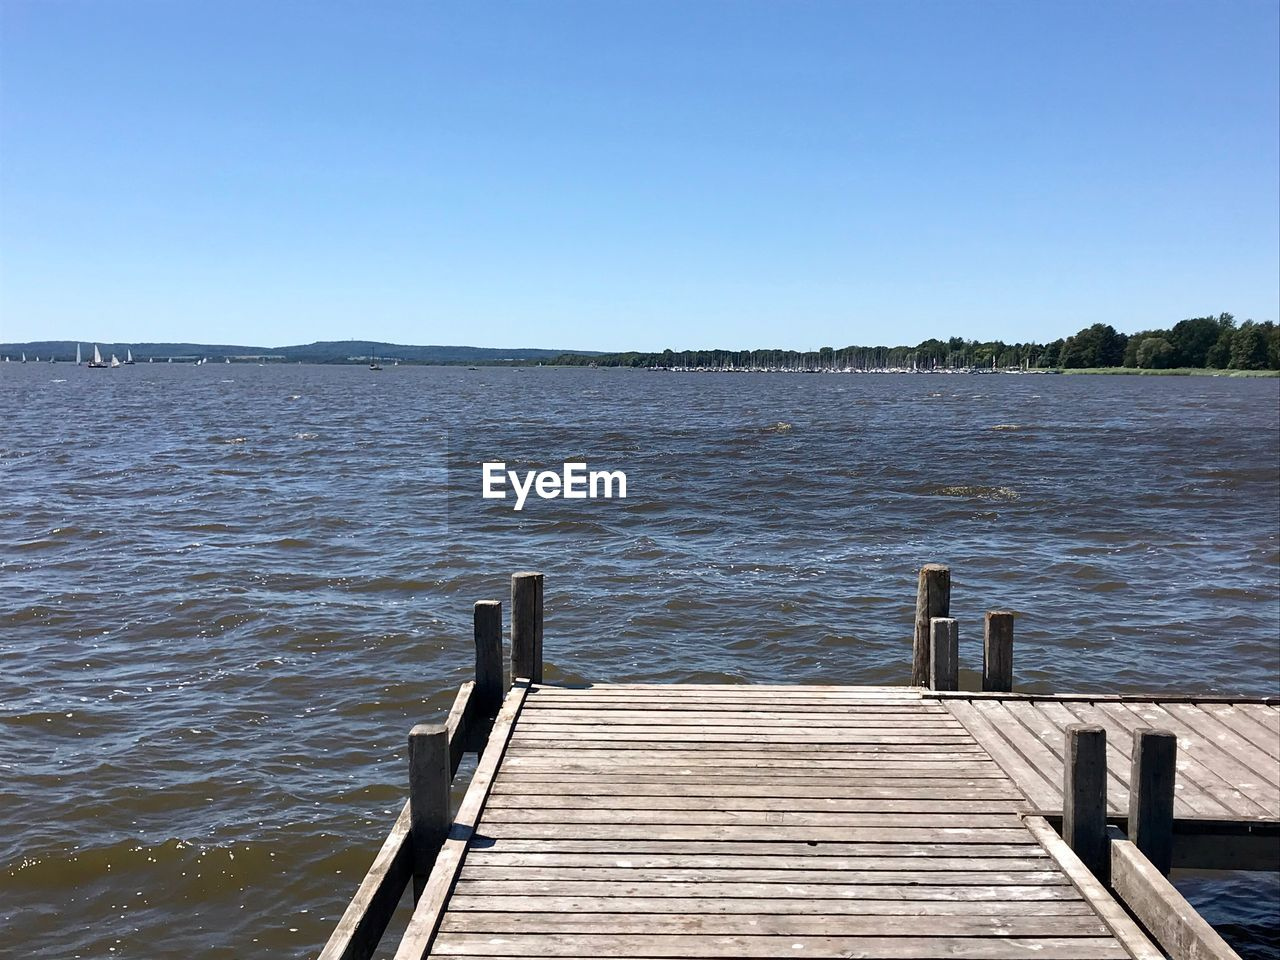 water, sky, clear sky, beauty in nature, tranquility, pier, nature, copy space, lake, wood - material, tranquil scene, scenics - nature, no people, day, jetty, architecture, the way forward, blue, outdoors, wood paneling